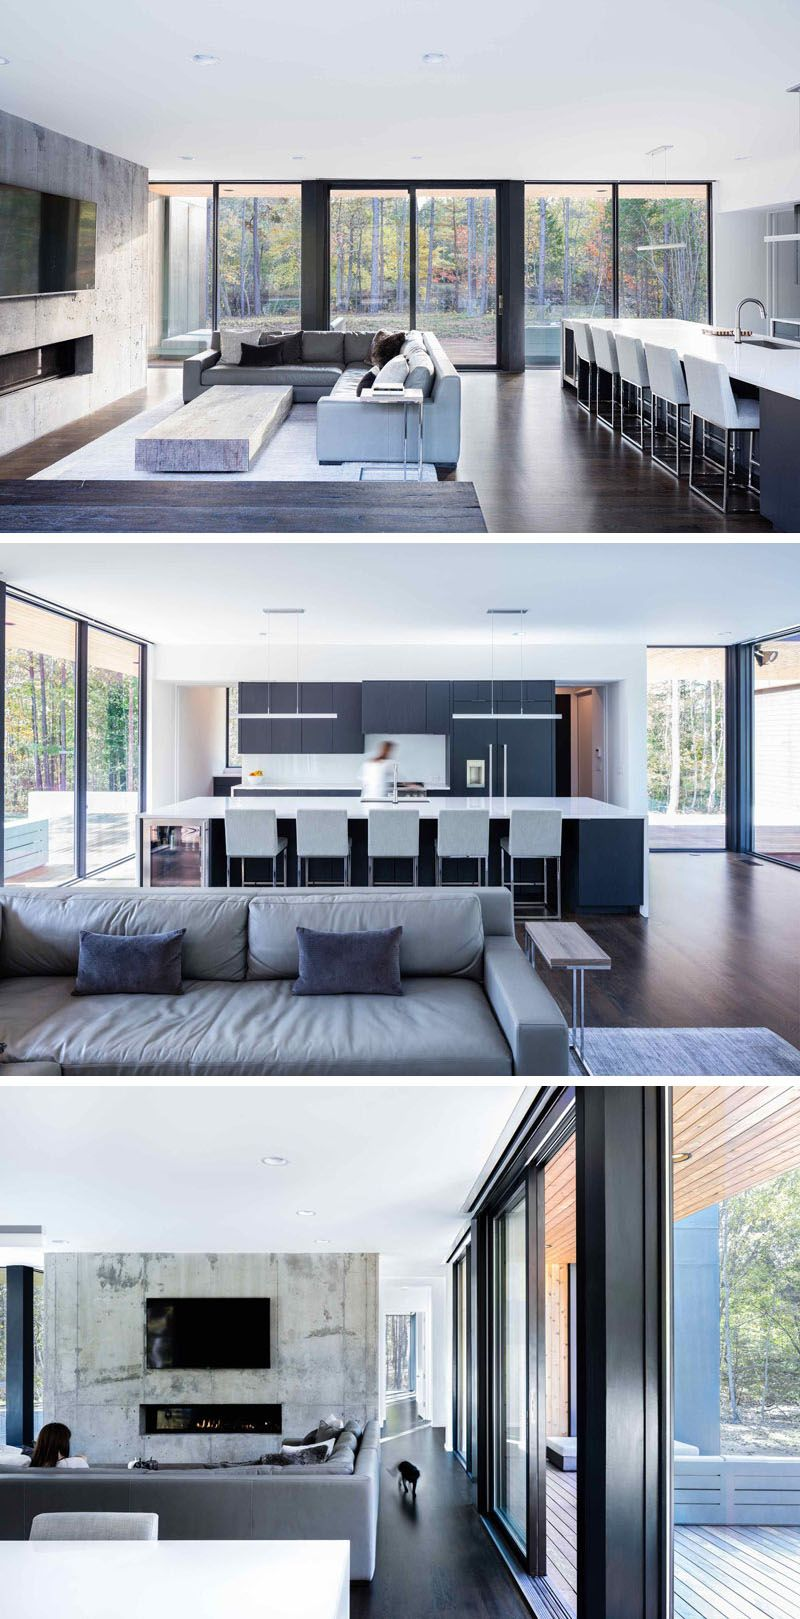 Home decoration allows you to create luxury yet modern interior design projects discover more luxurious ideas at luxxu also rh pinterest